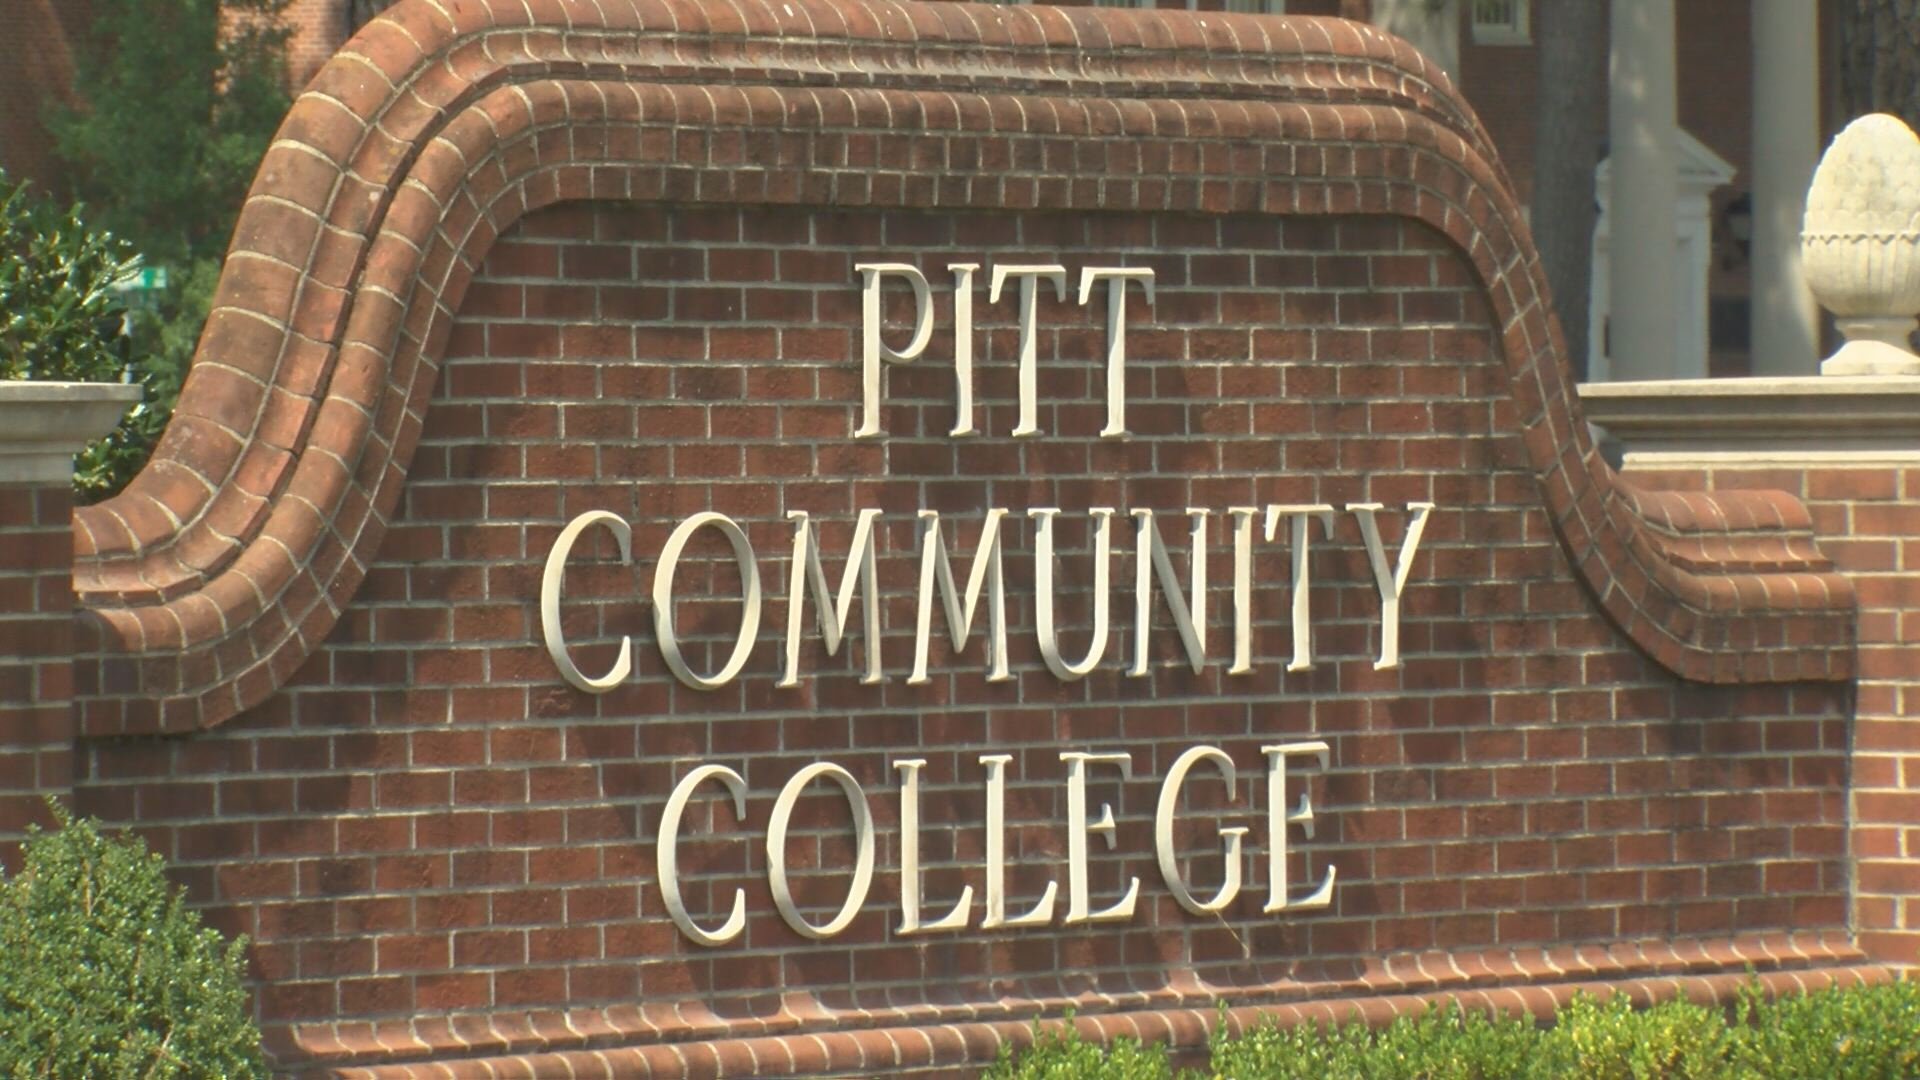 PITT COMMUNITY COLLEGE - DM_475396